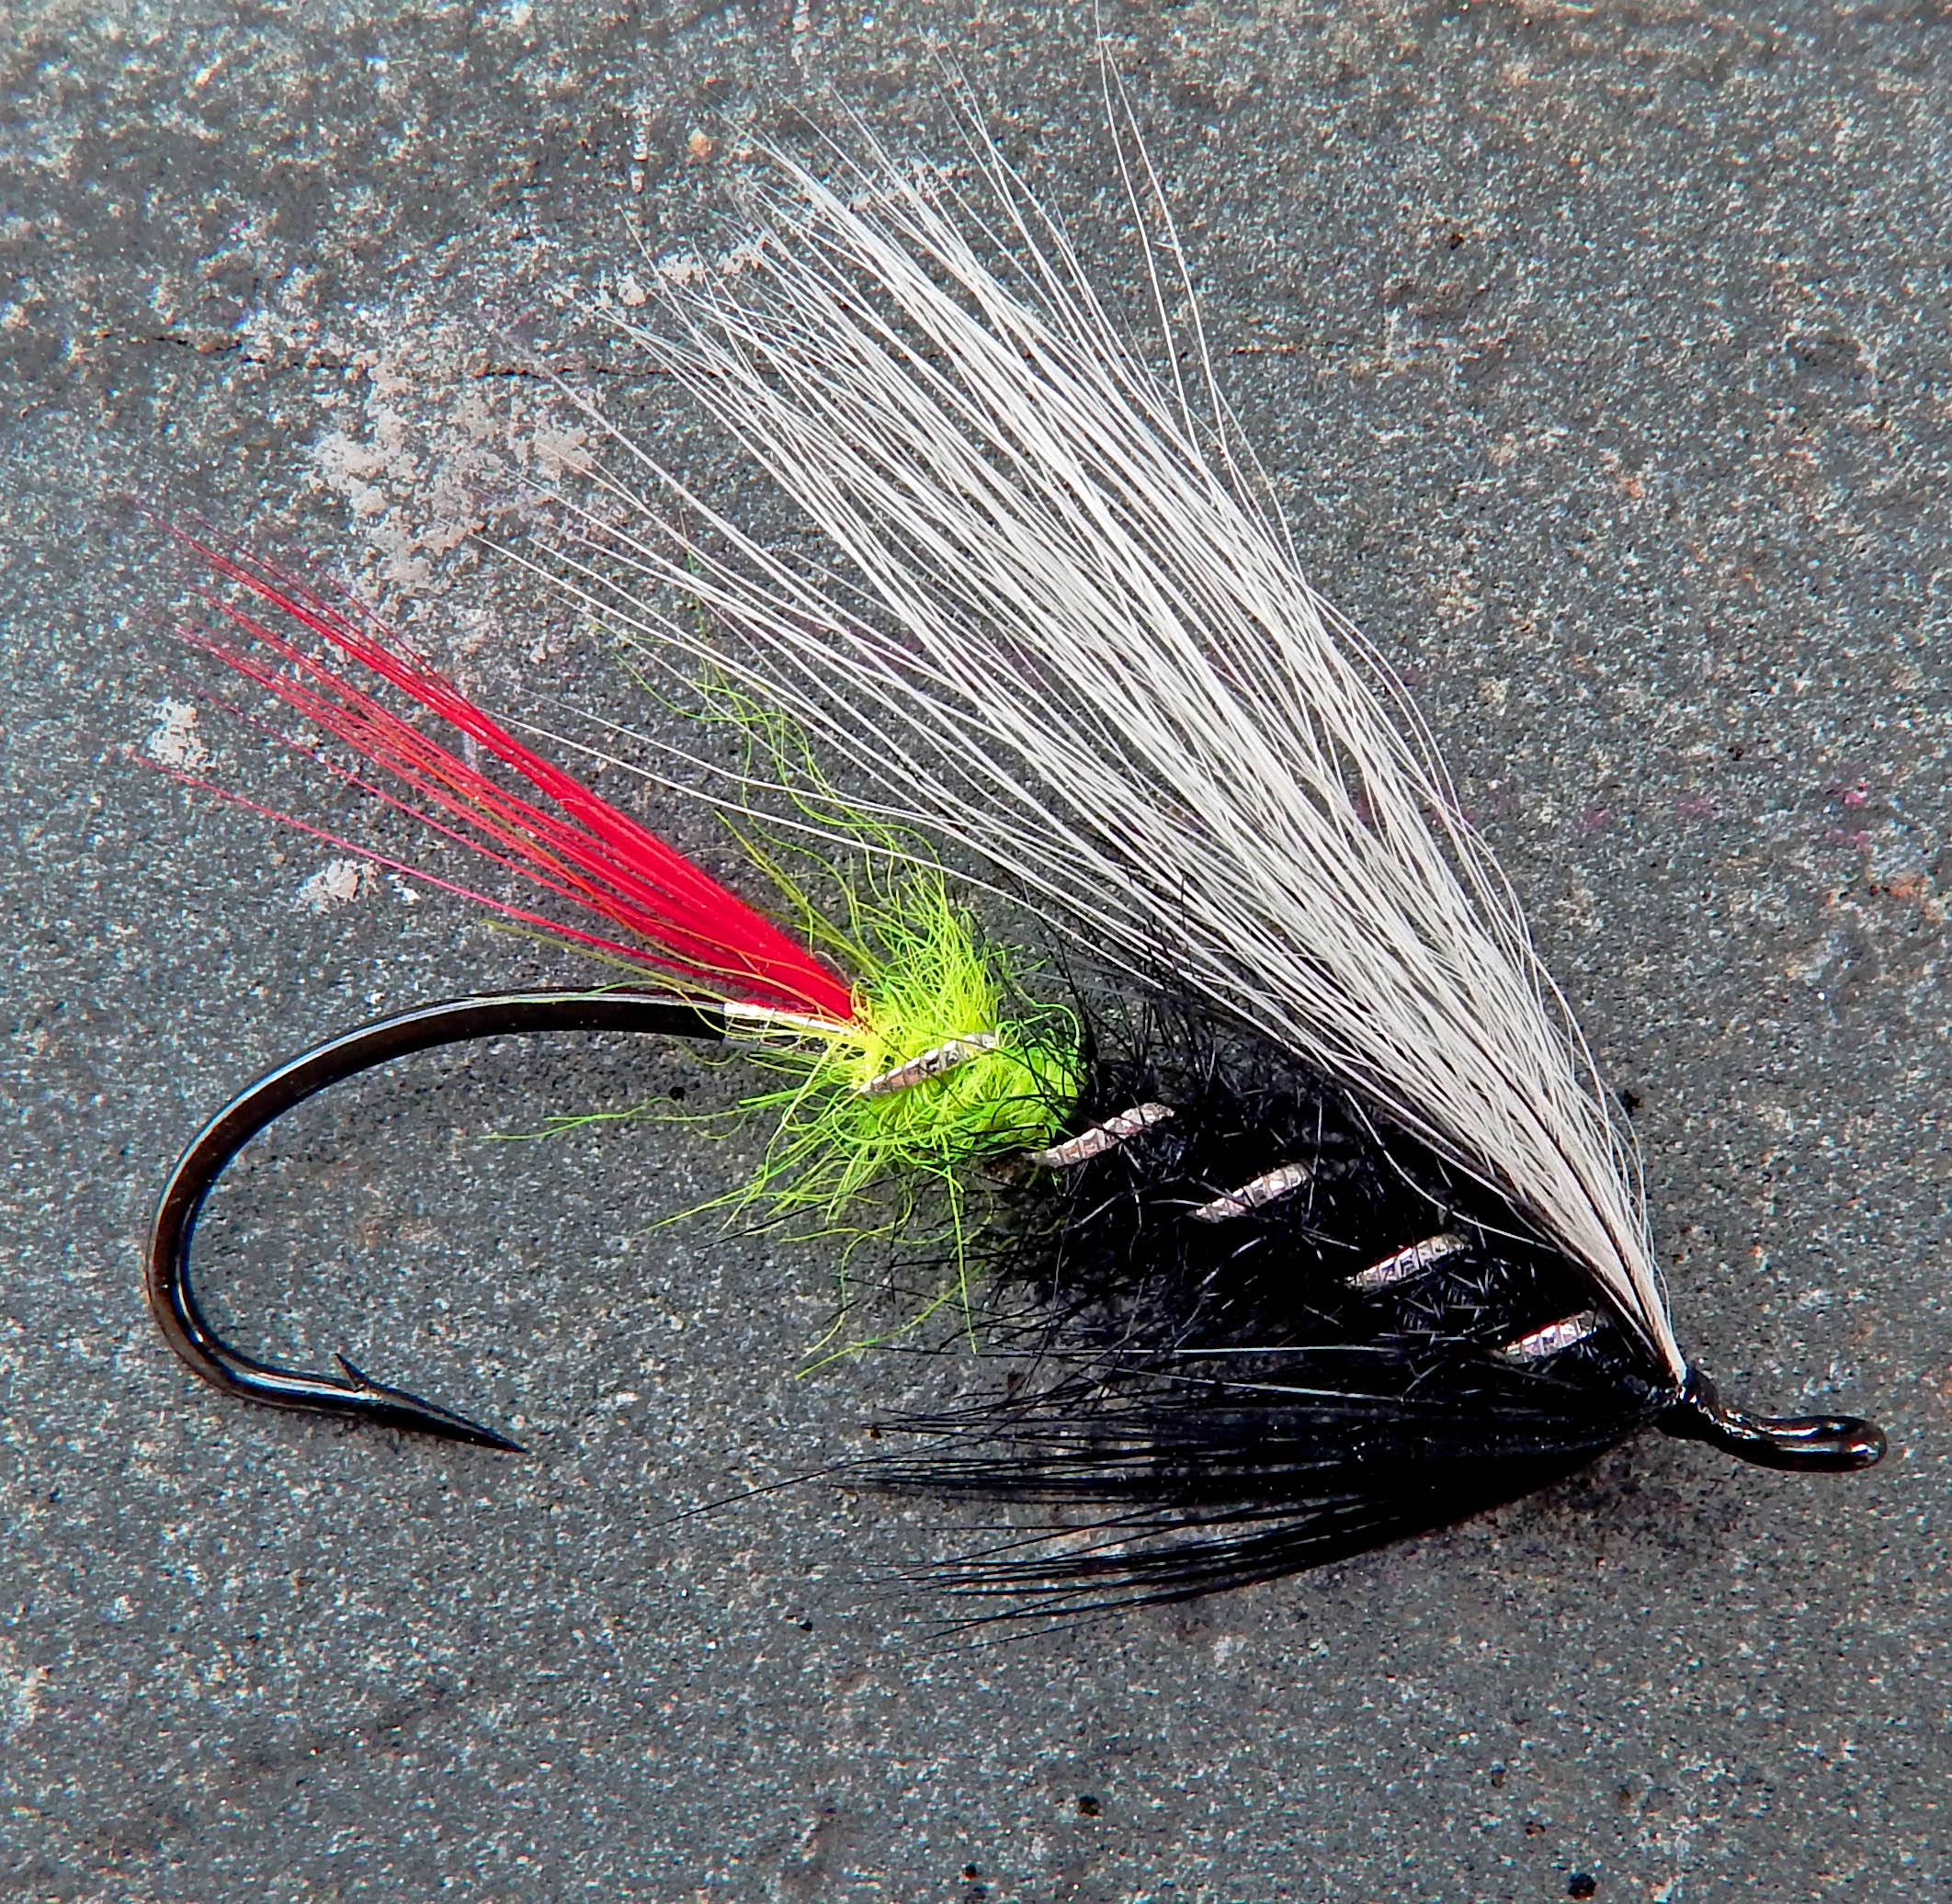 Fly Tying Materials Olympic Peninsula Fly Fishing Blog